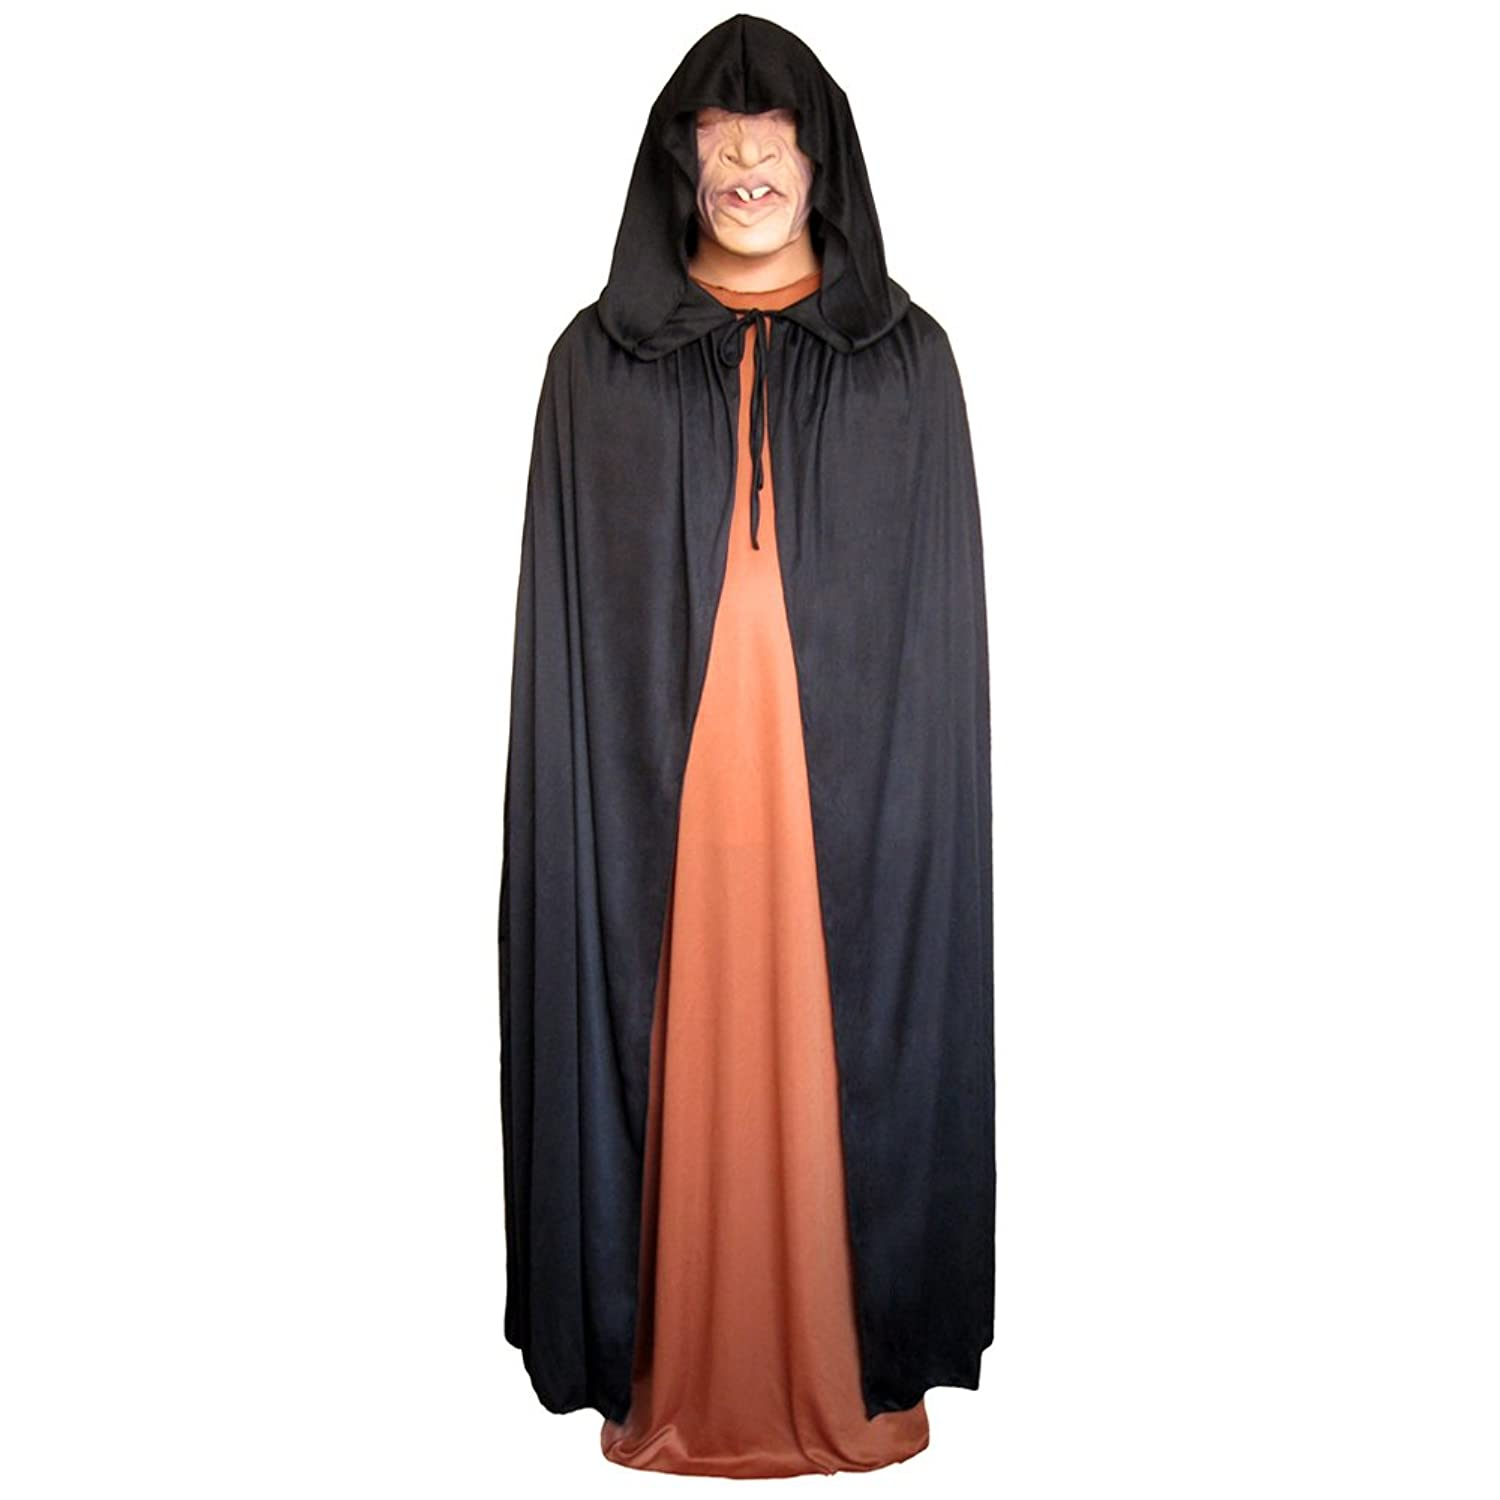 amazoncom 54 black cloak with large hood halloween costume cape stc11517 clothing - Halloween Costumes With A Cape